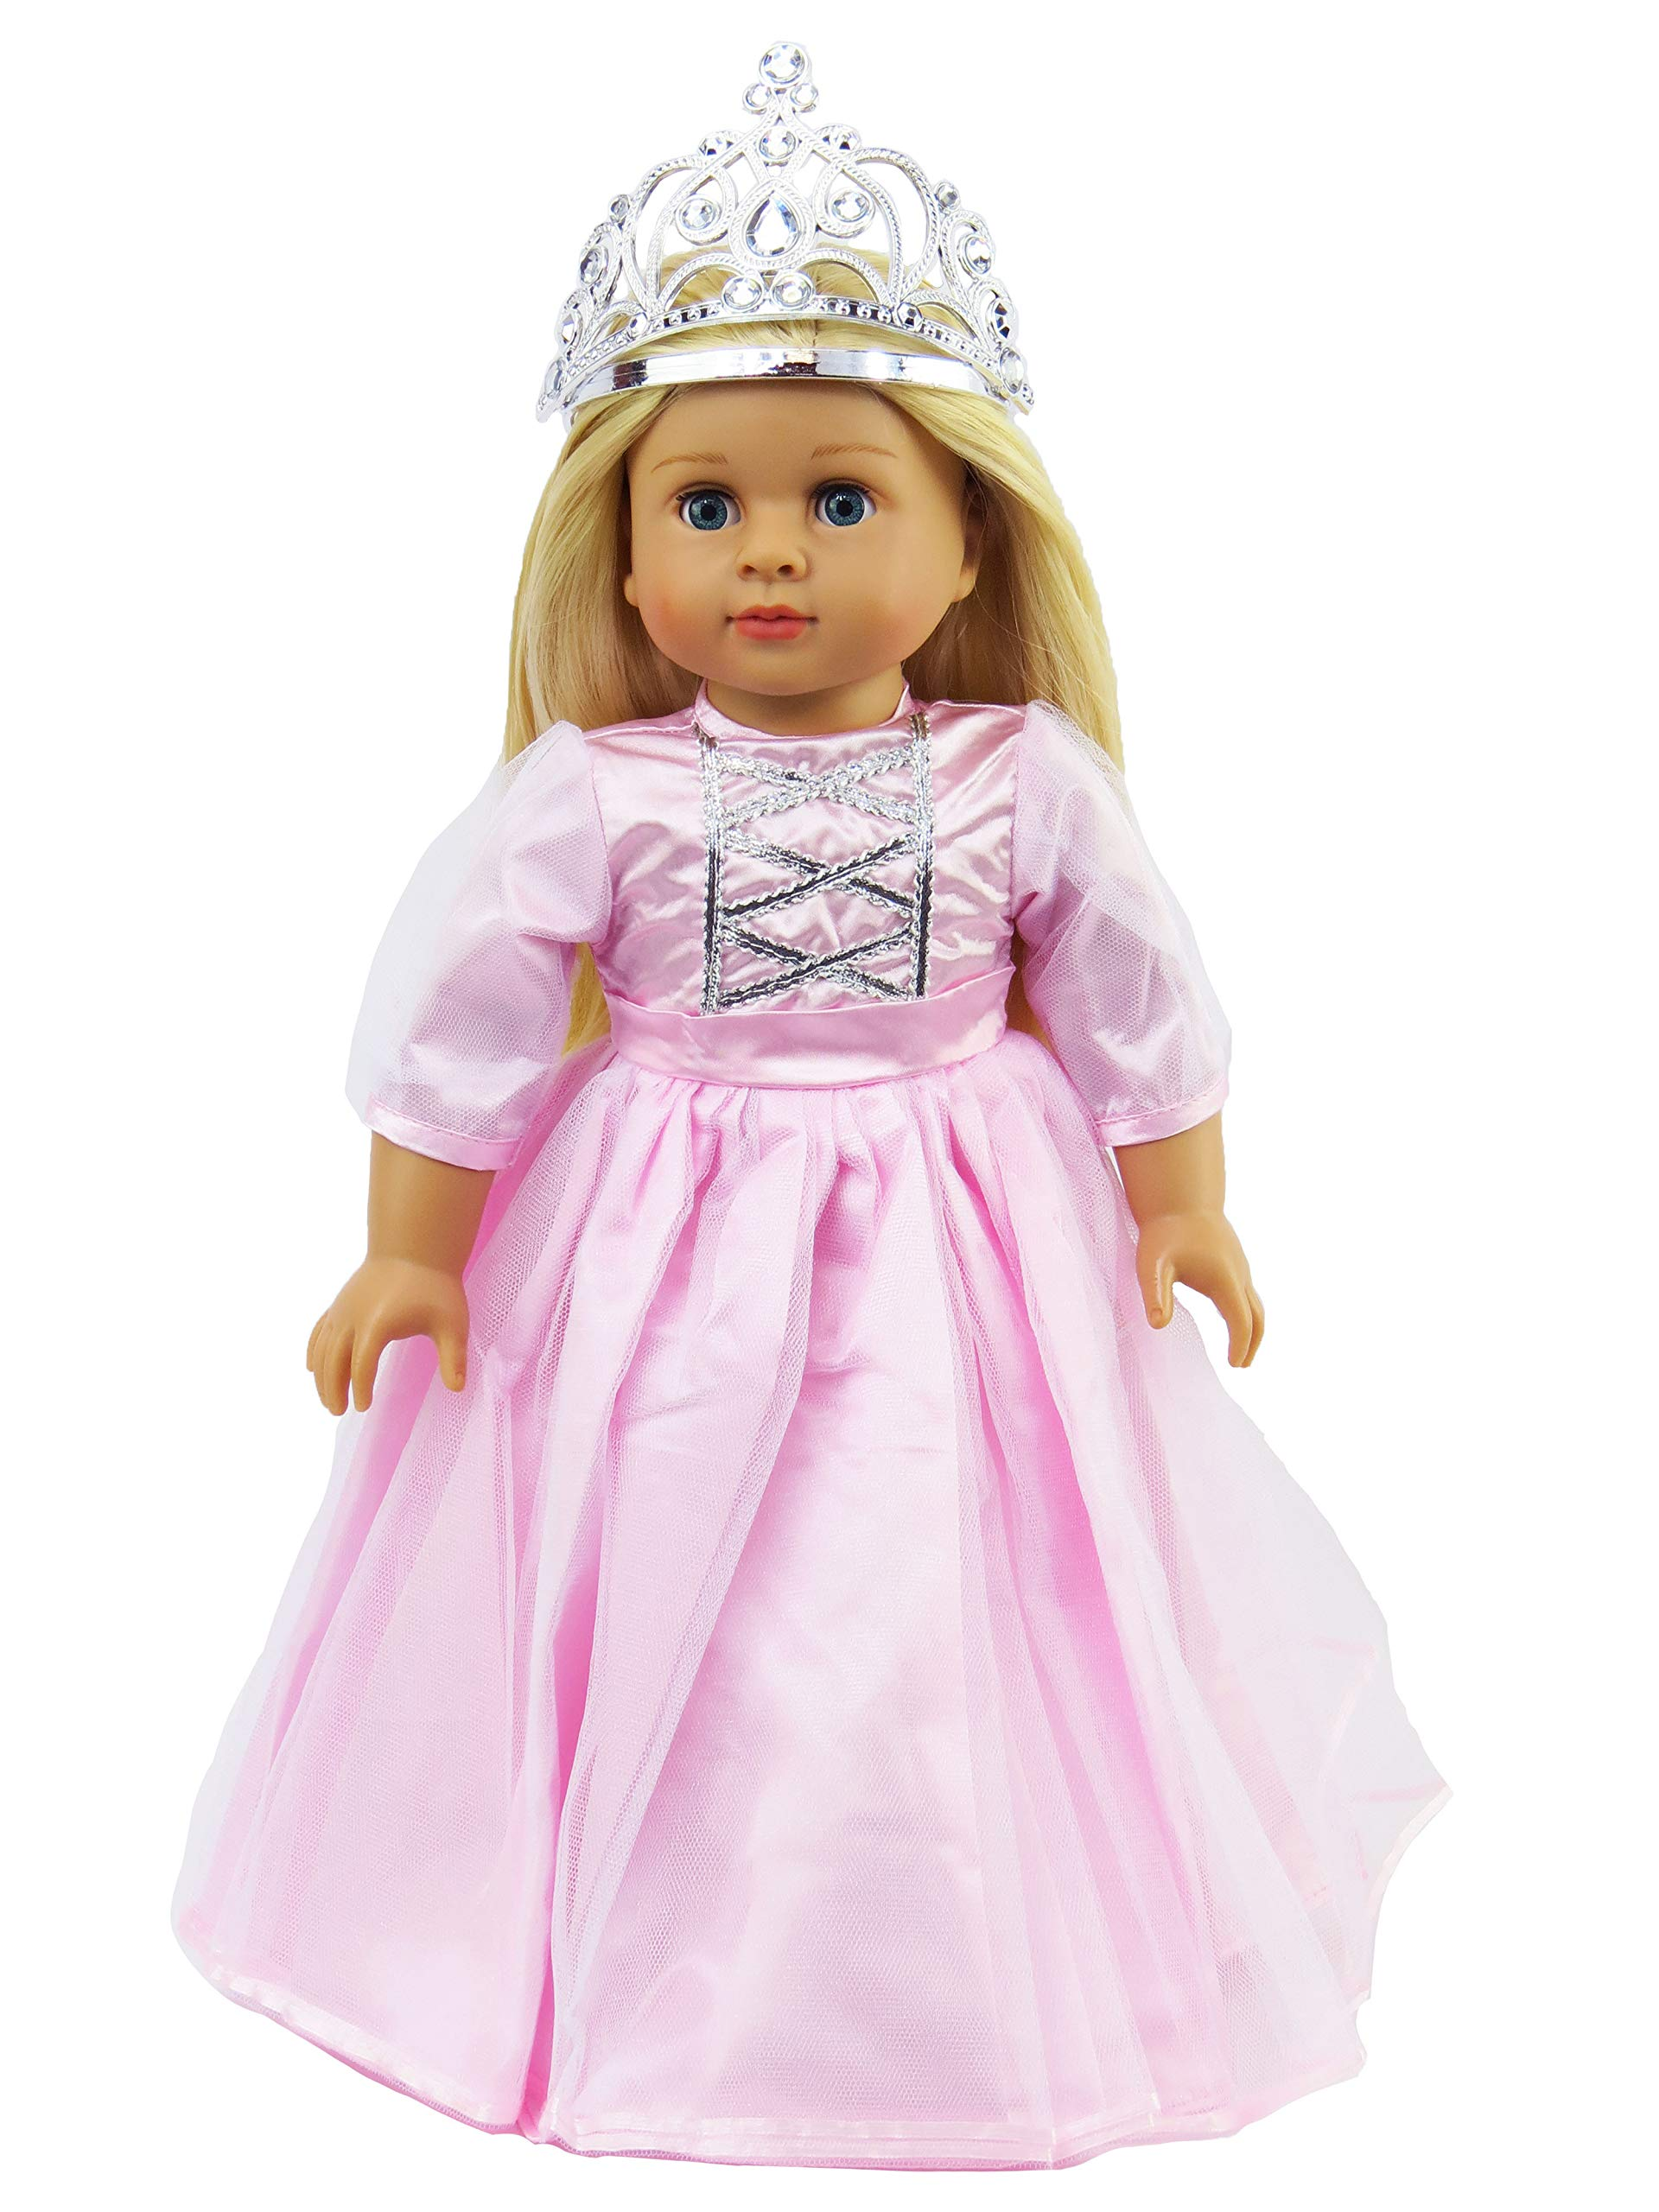 American Fashion World Pink and Silver Princess Gown with Crown fits 18 Inch Doll